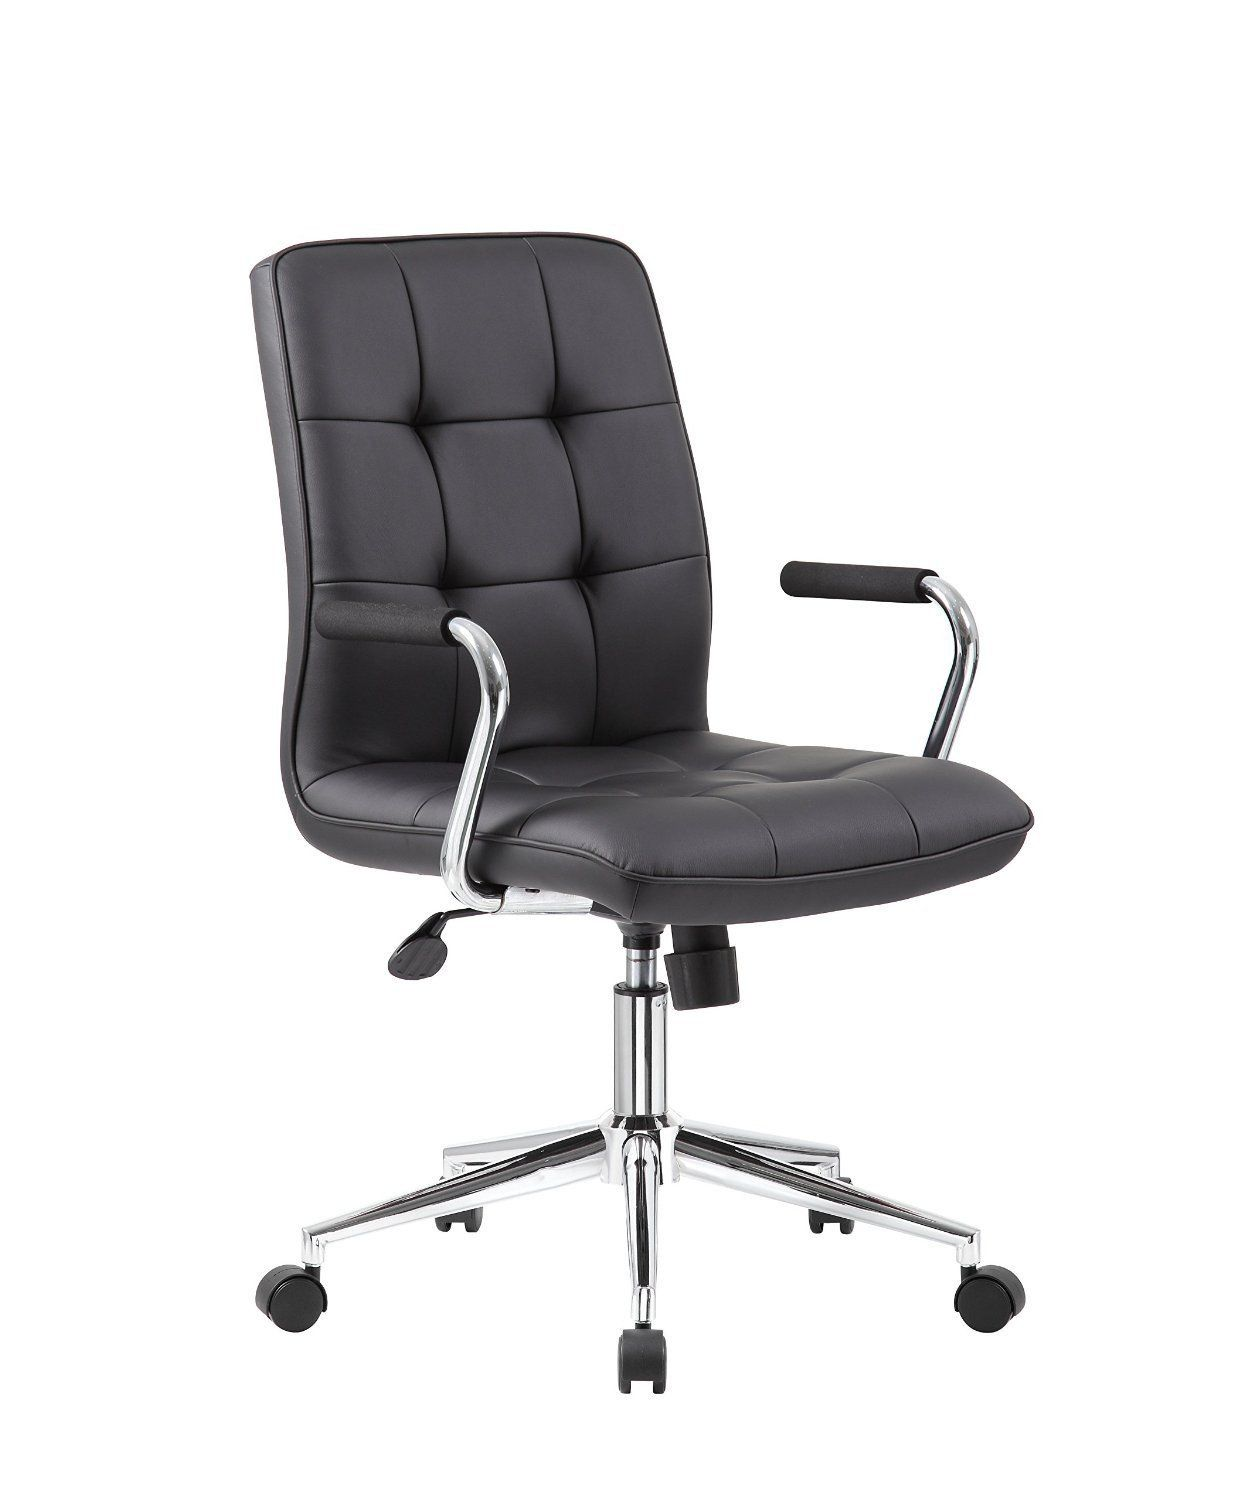 Boss Office Products B331 Bk Modern Office Chair W Chrome Arms